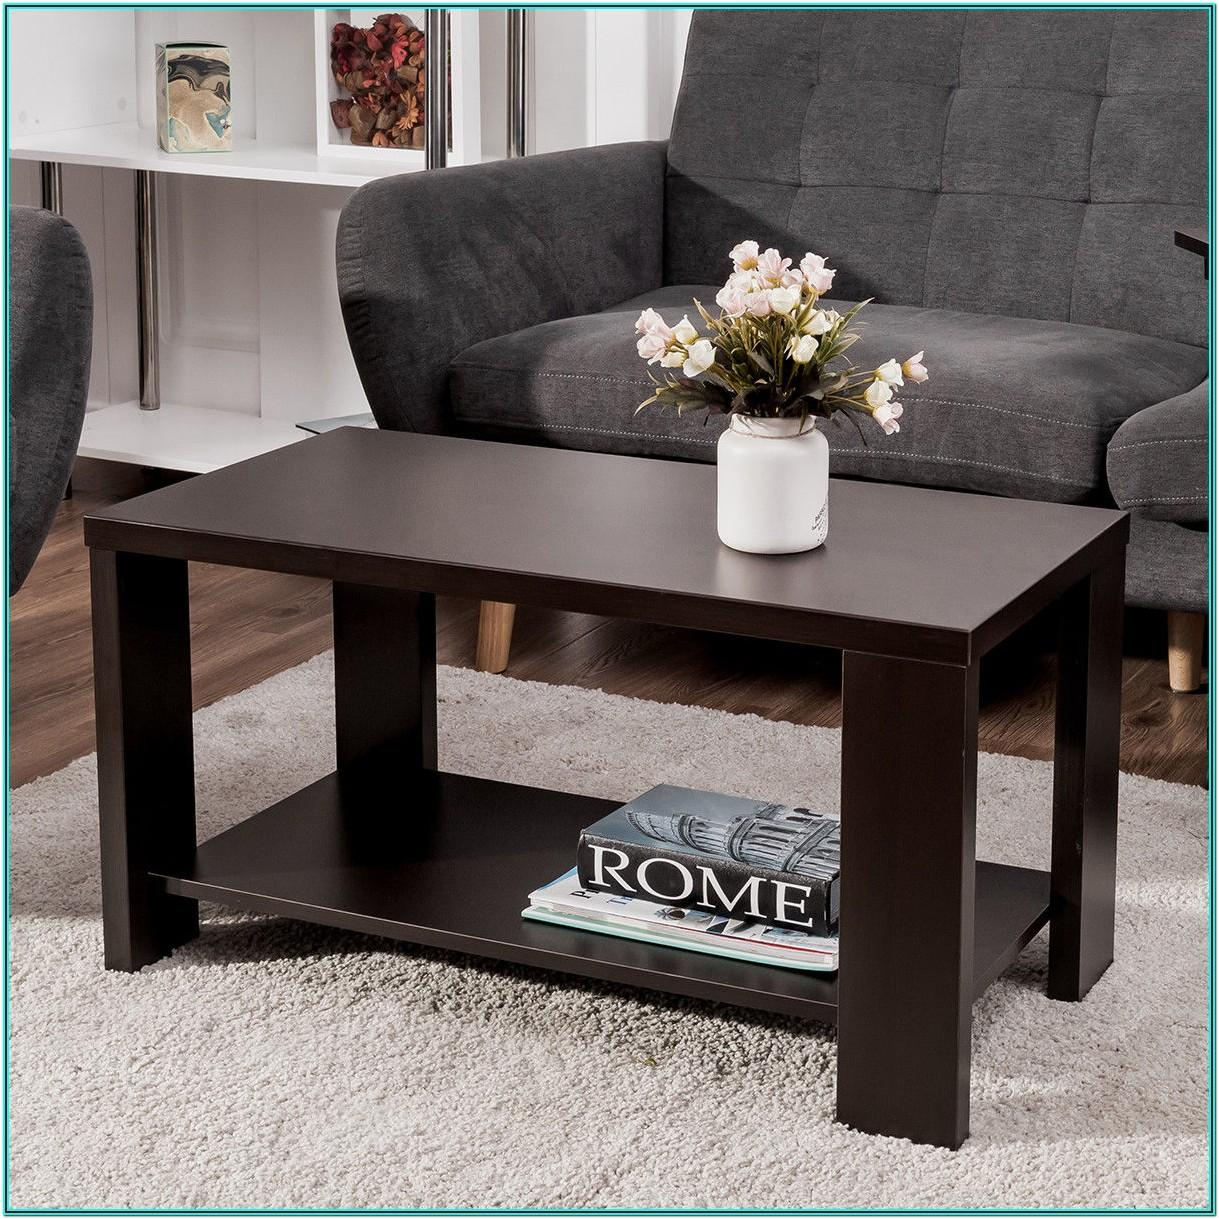 Modern Wooden Coffee Tables For Living Room